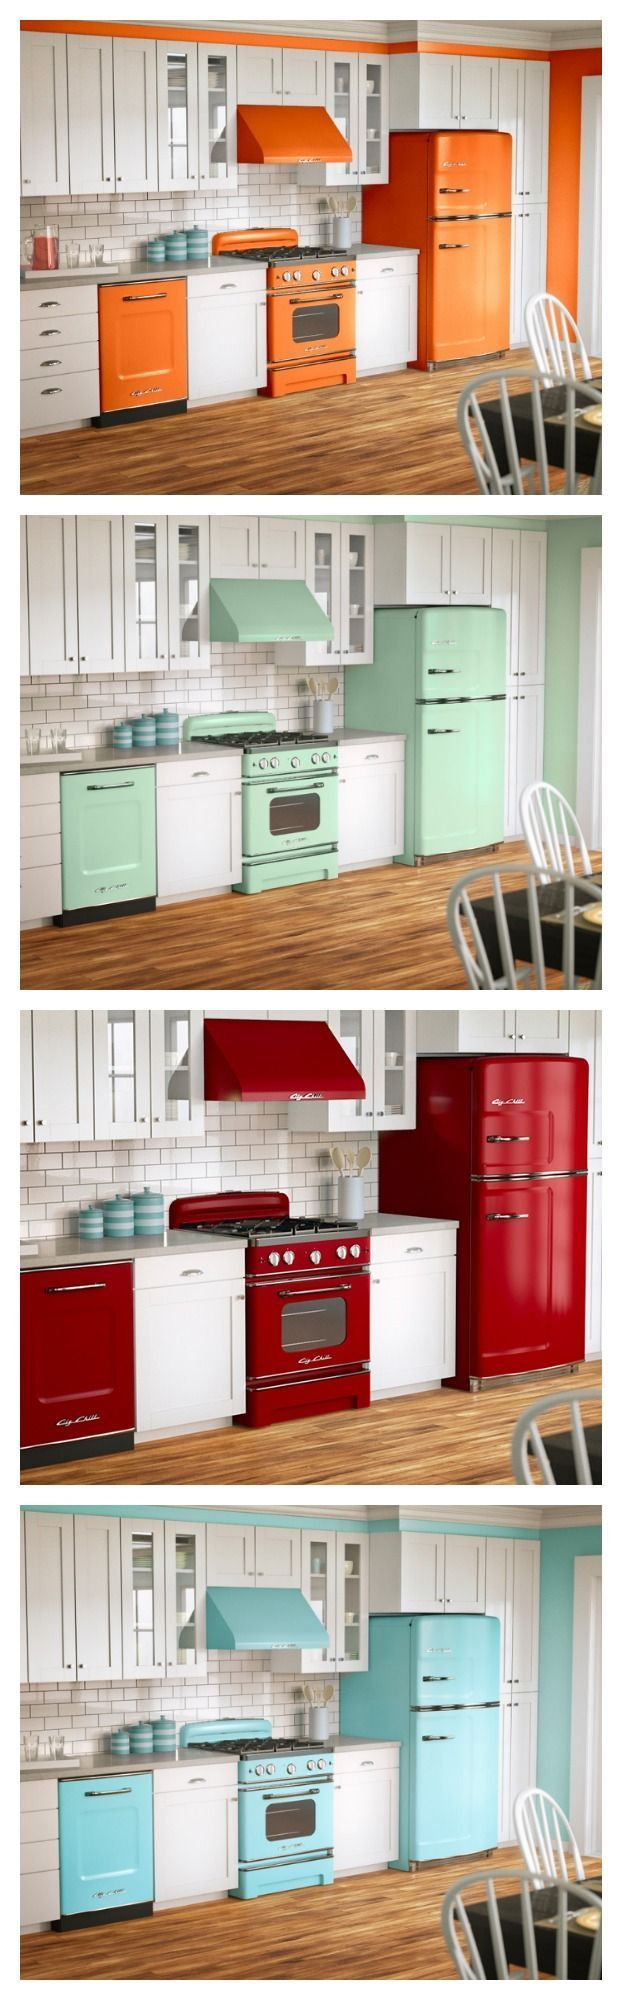 fun colors big style in a retro design fall in love with your kitchen again with big chill. Black Bedroom Furniture Sets. Home Design Ideas